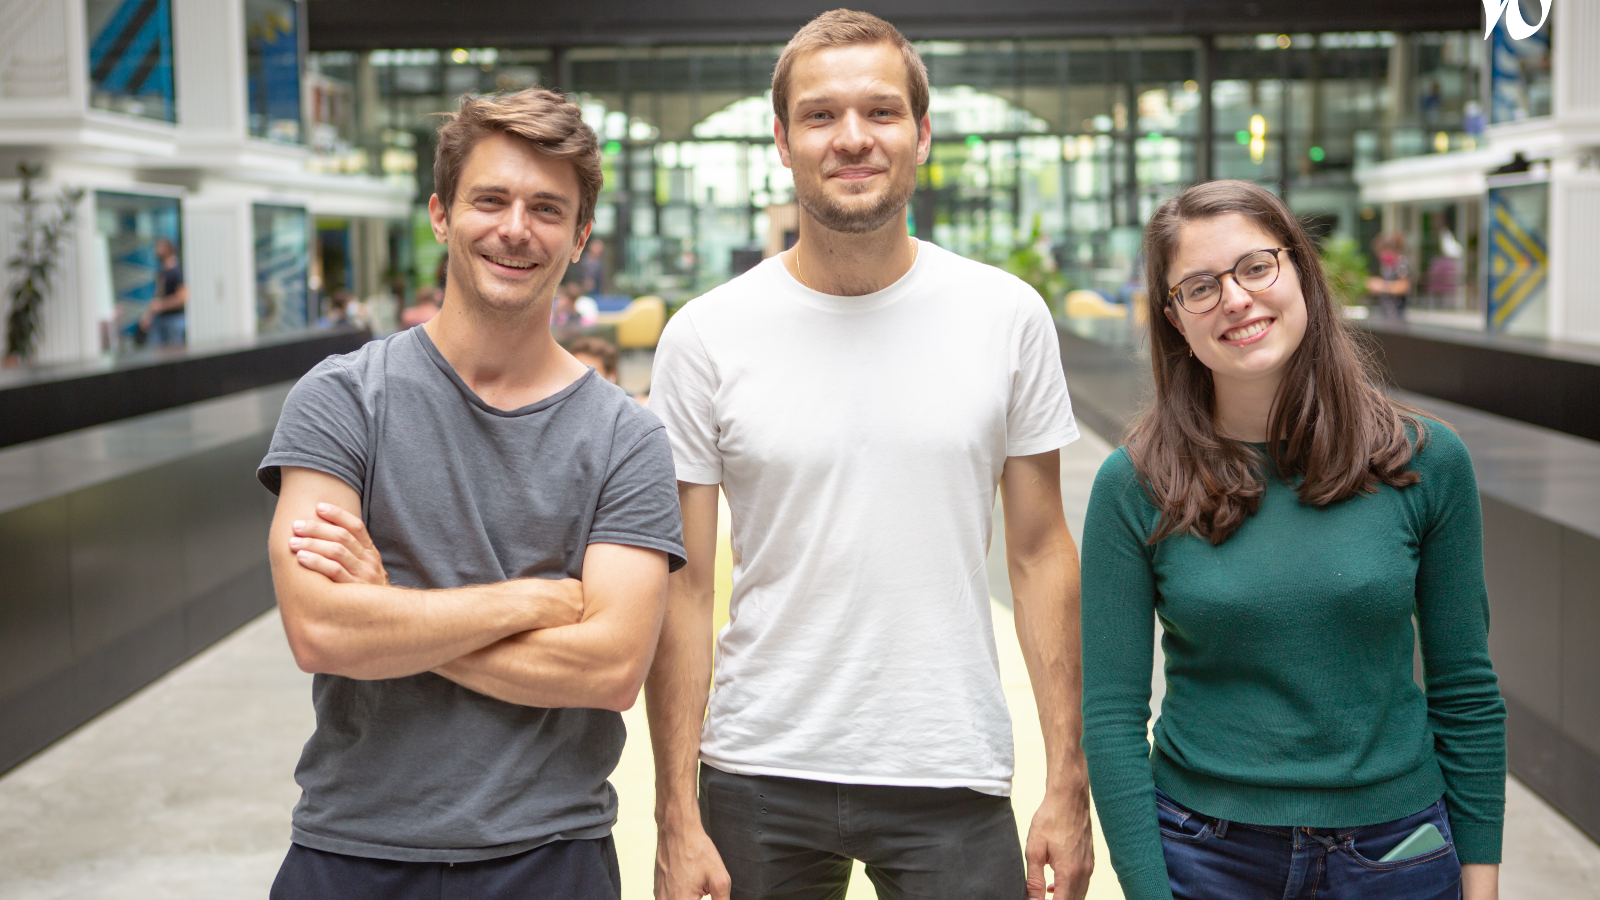 Thumbnail for news article called Hors Normes (HEC program) raises 1,5M€ to deploy its anti-waste grocery service in France & Europe